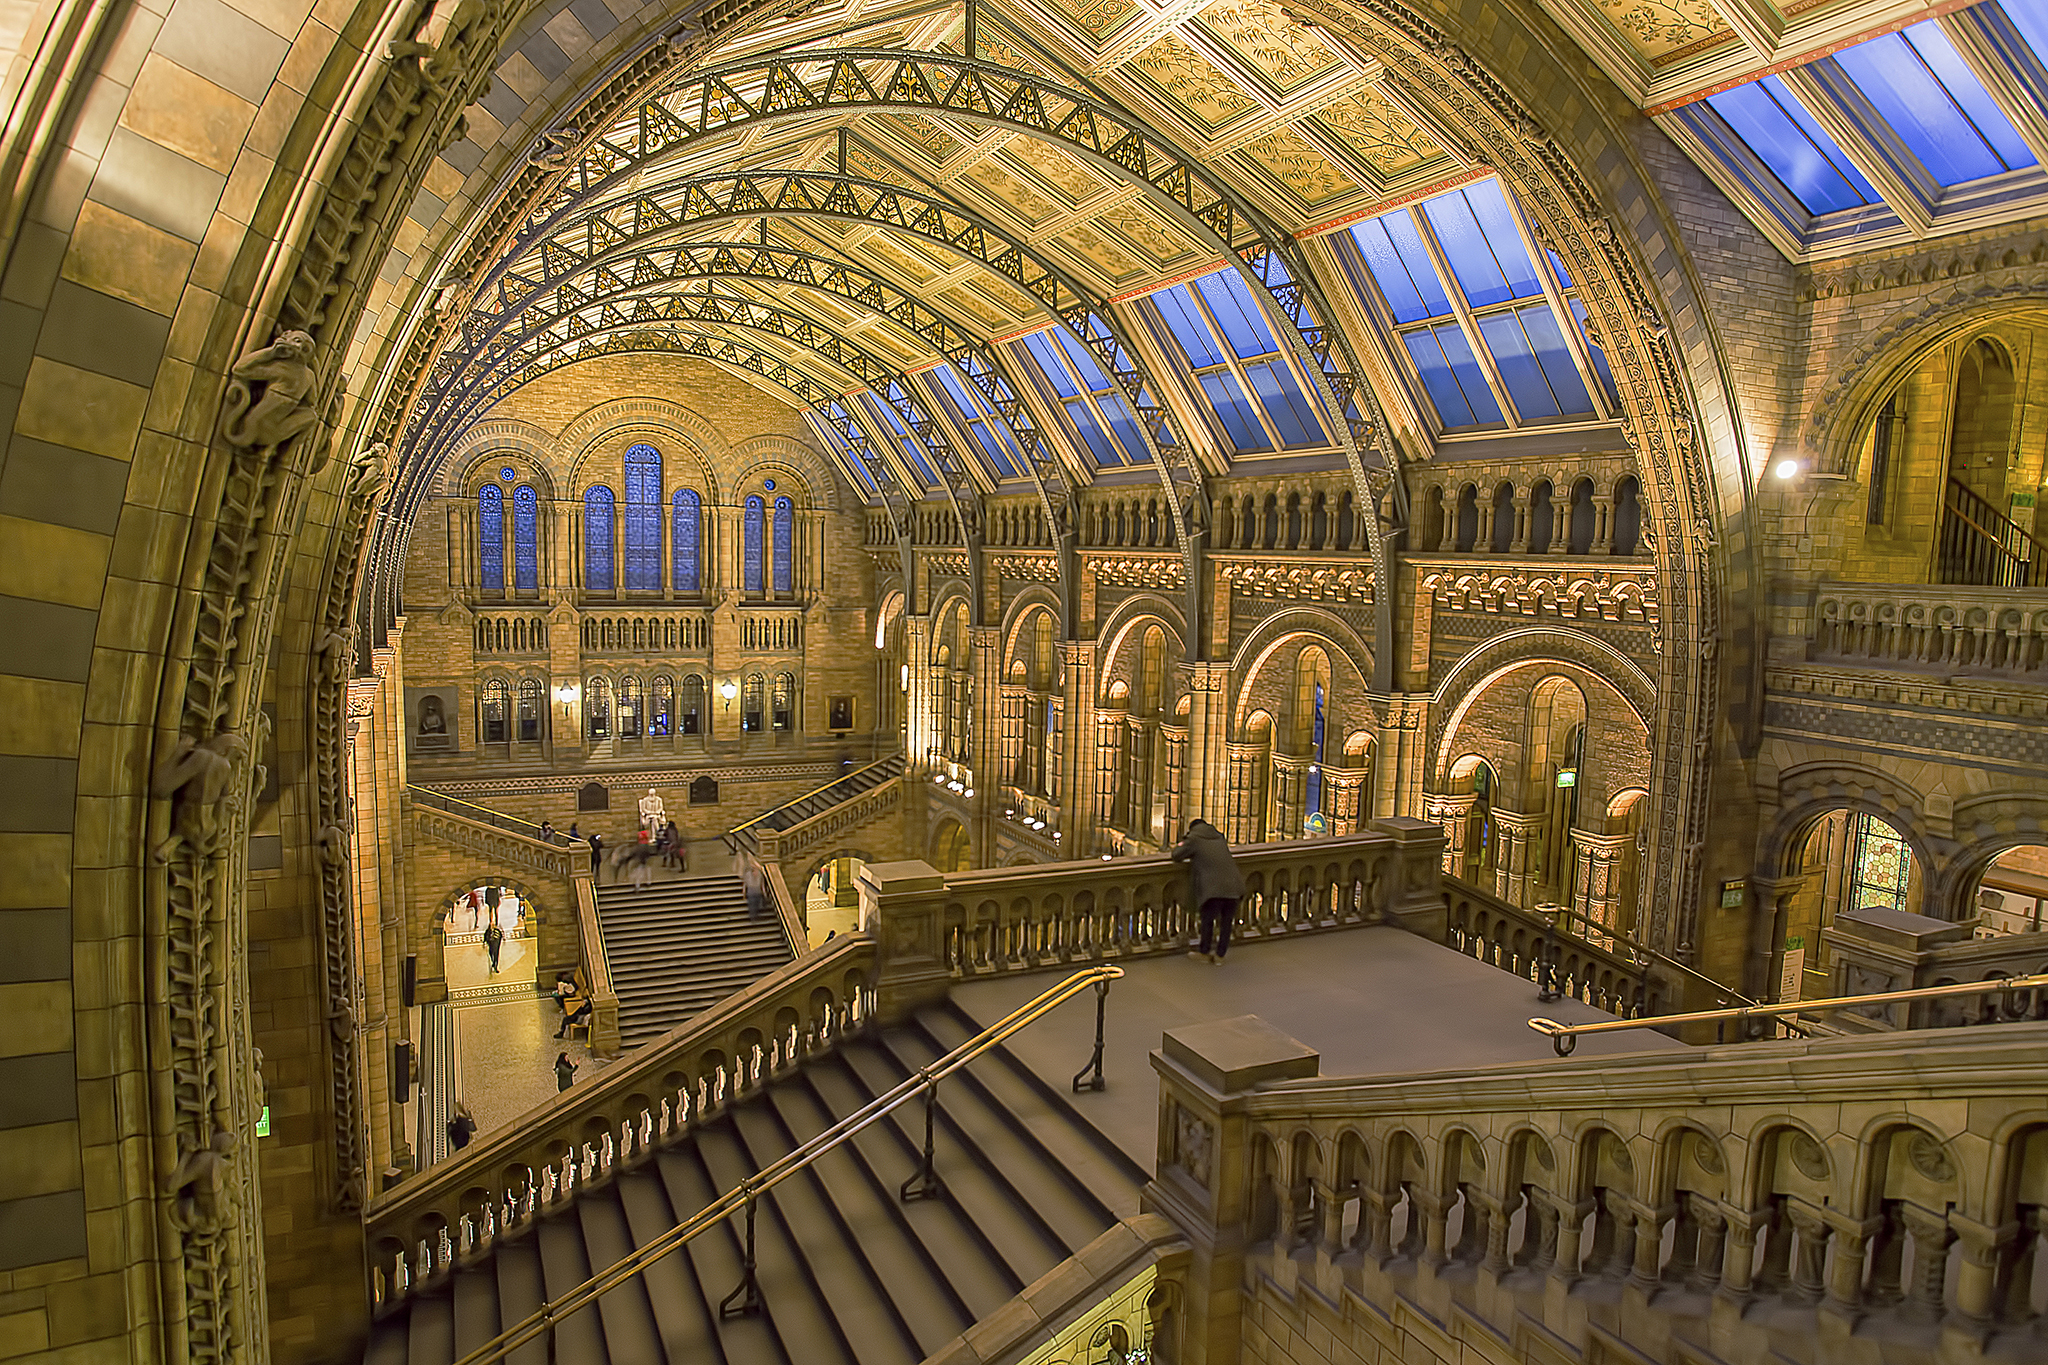 The Natural History Museum, United Kingdom